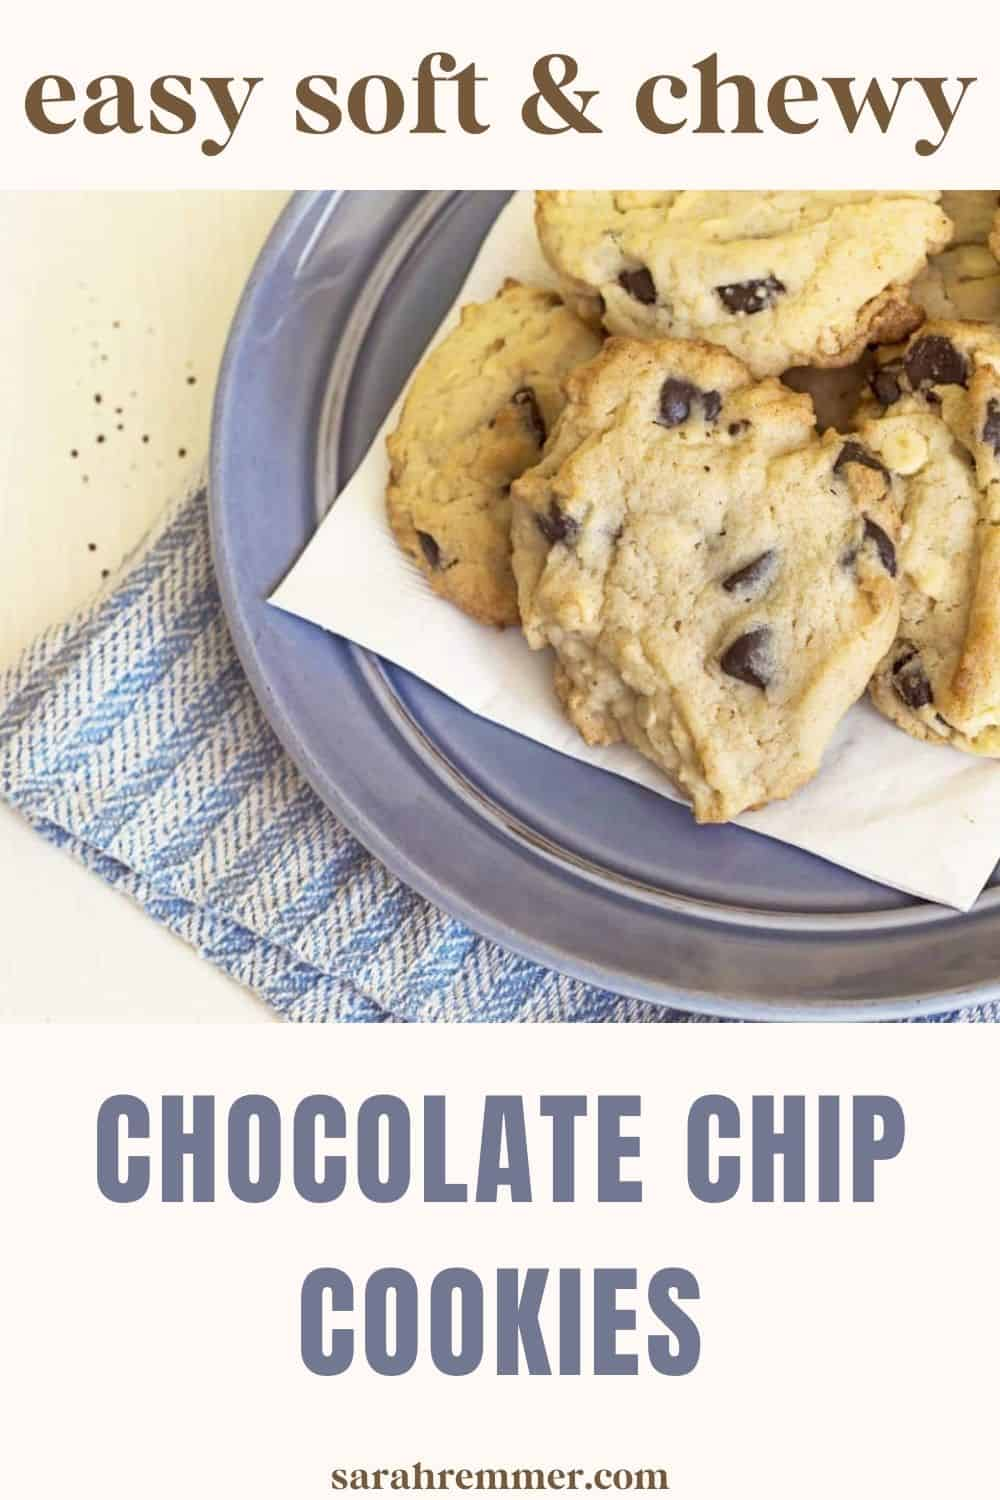 For as long as I can remember cookies have been one of my most favourite foods! I've tried to expand my cookie horizons but always revert back to my comfortable and always dependable chocolate chip versions! Plain old chocolate chip cookies are just truly my most favourite treat - what can I say.